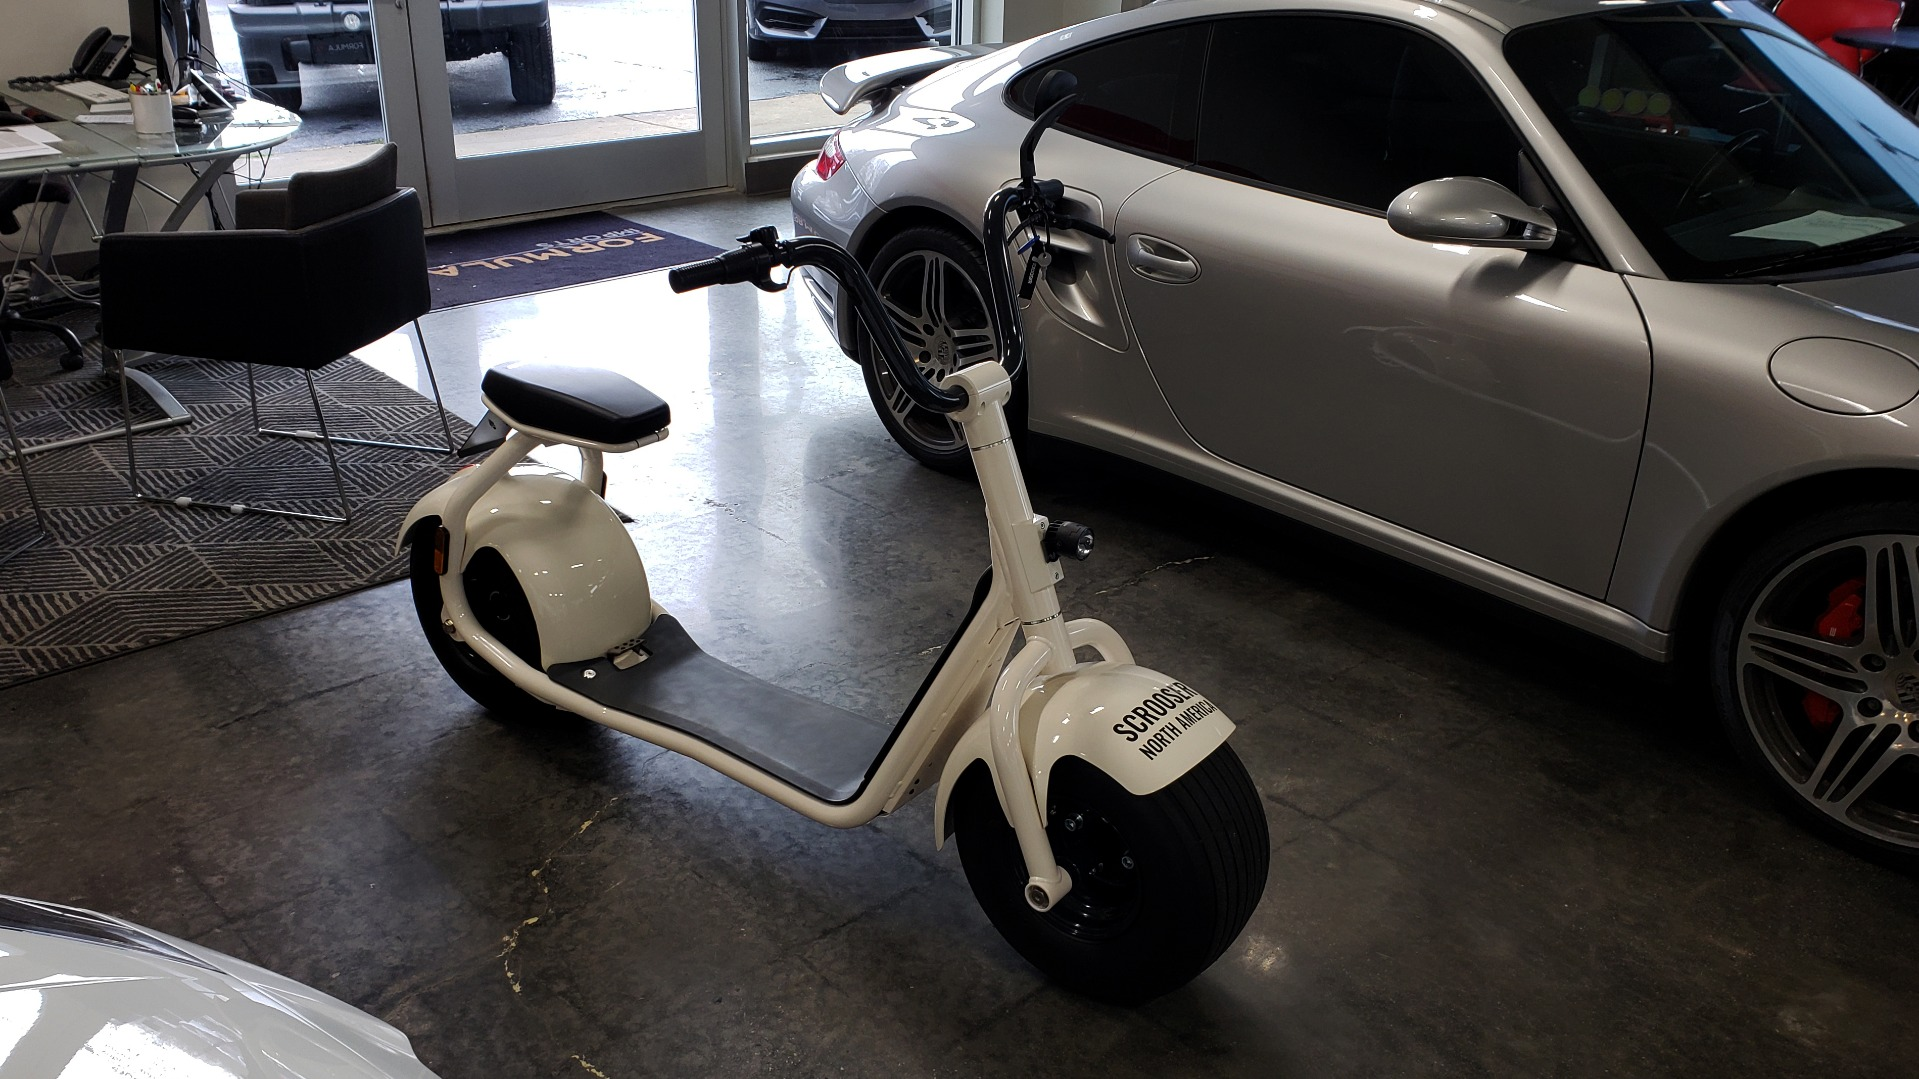 Used 2018 SCROOSER ELECTRIC SCOOTER SELF BALANCED / PRIME BLUE / 15.5 MPH / 34 MI RANGE for sale Sold at Formula Imports in Charlotte NC 28227 4